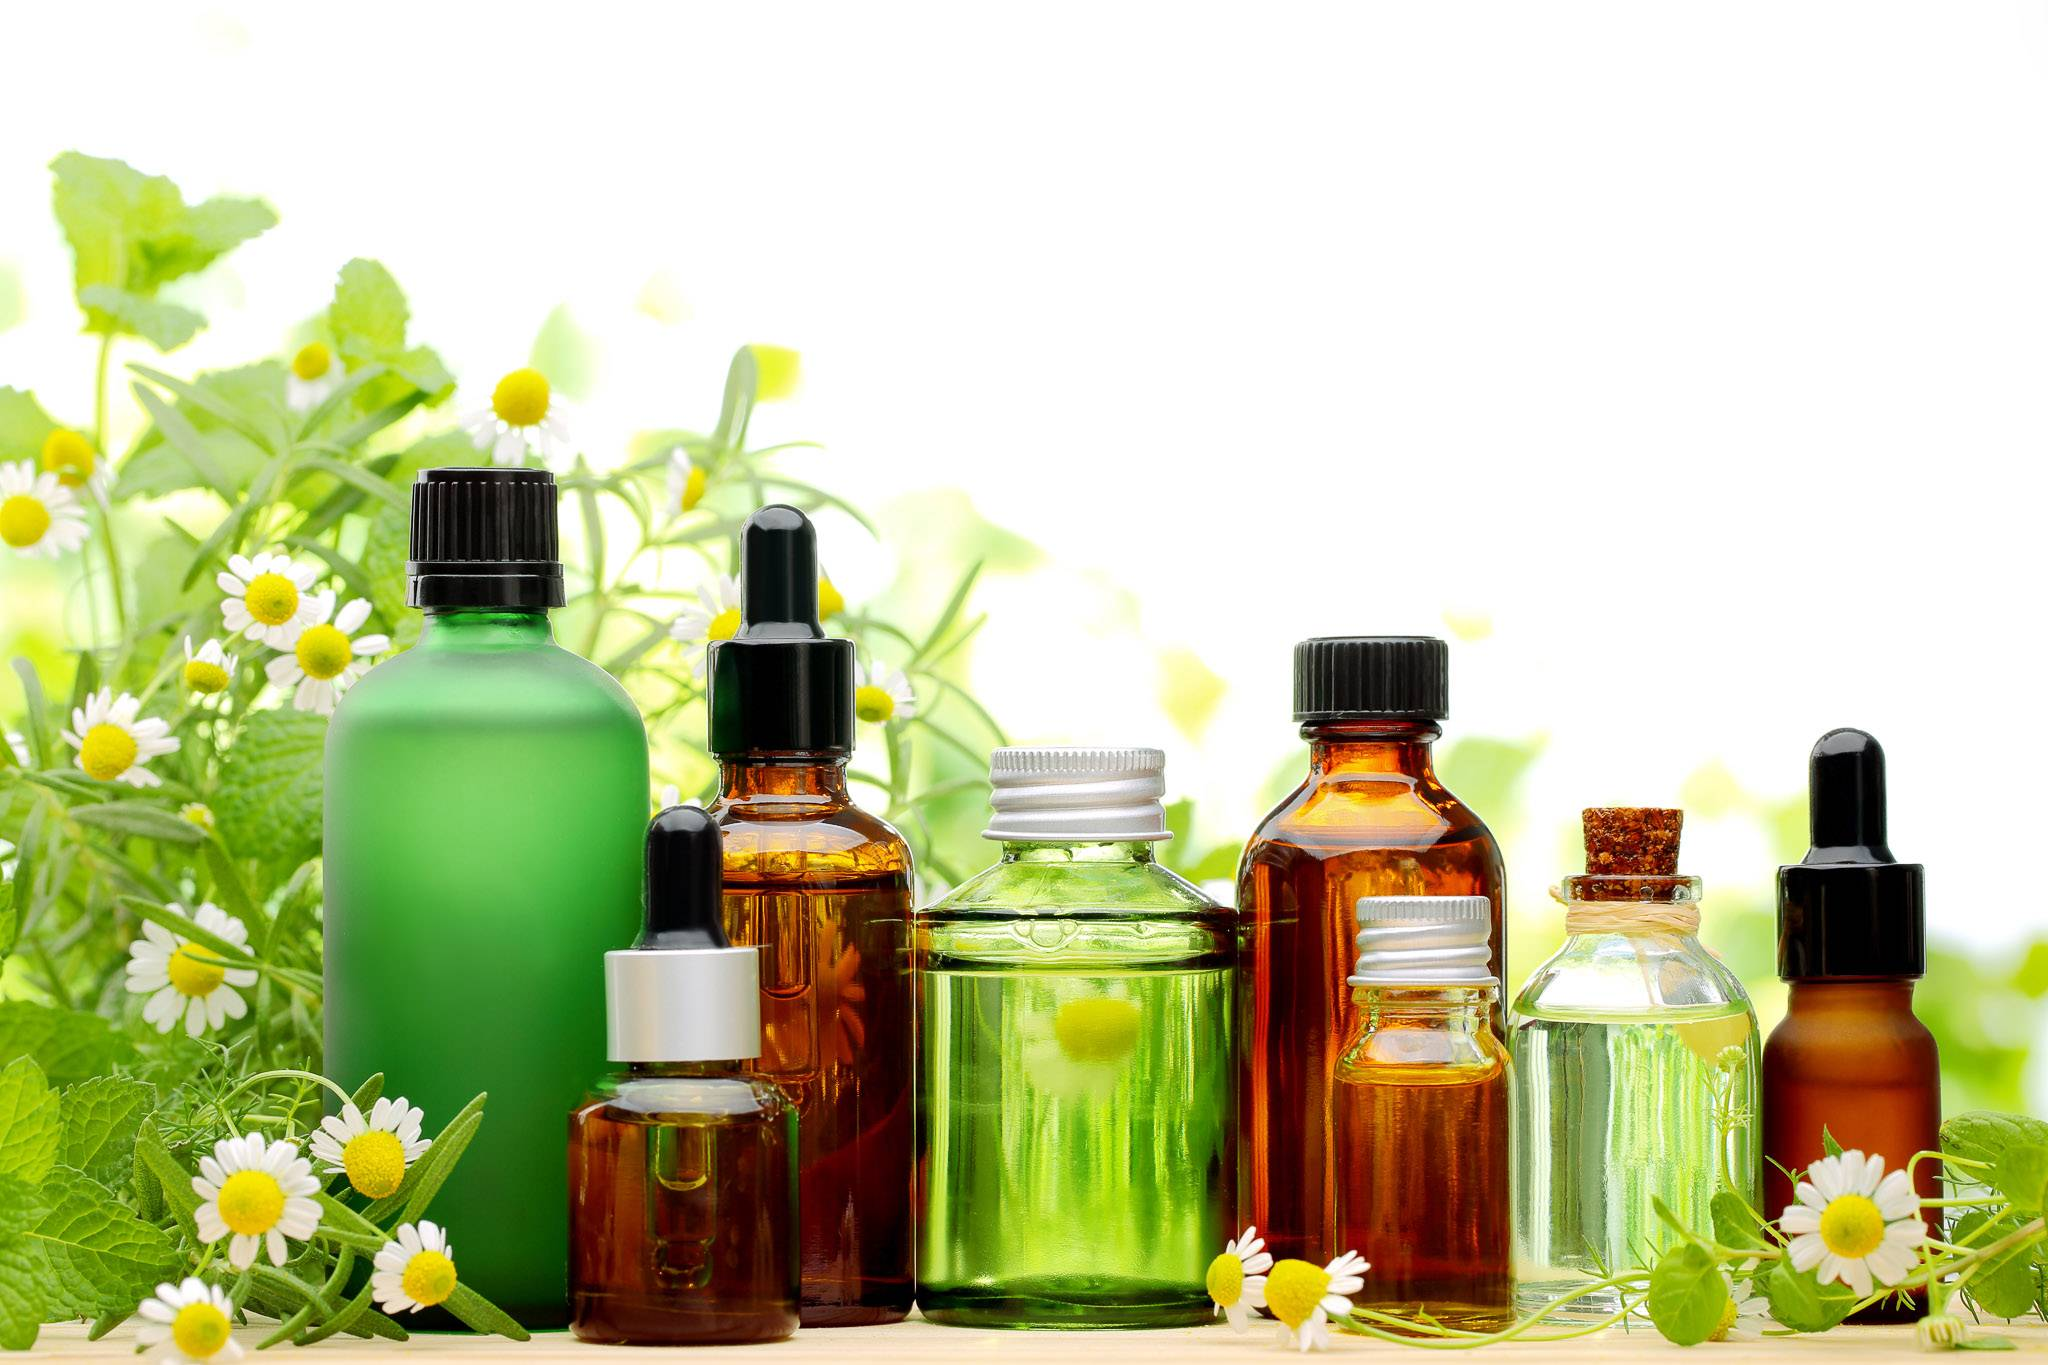 Image of bottles with essential oil